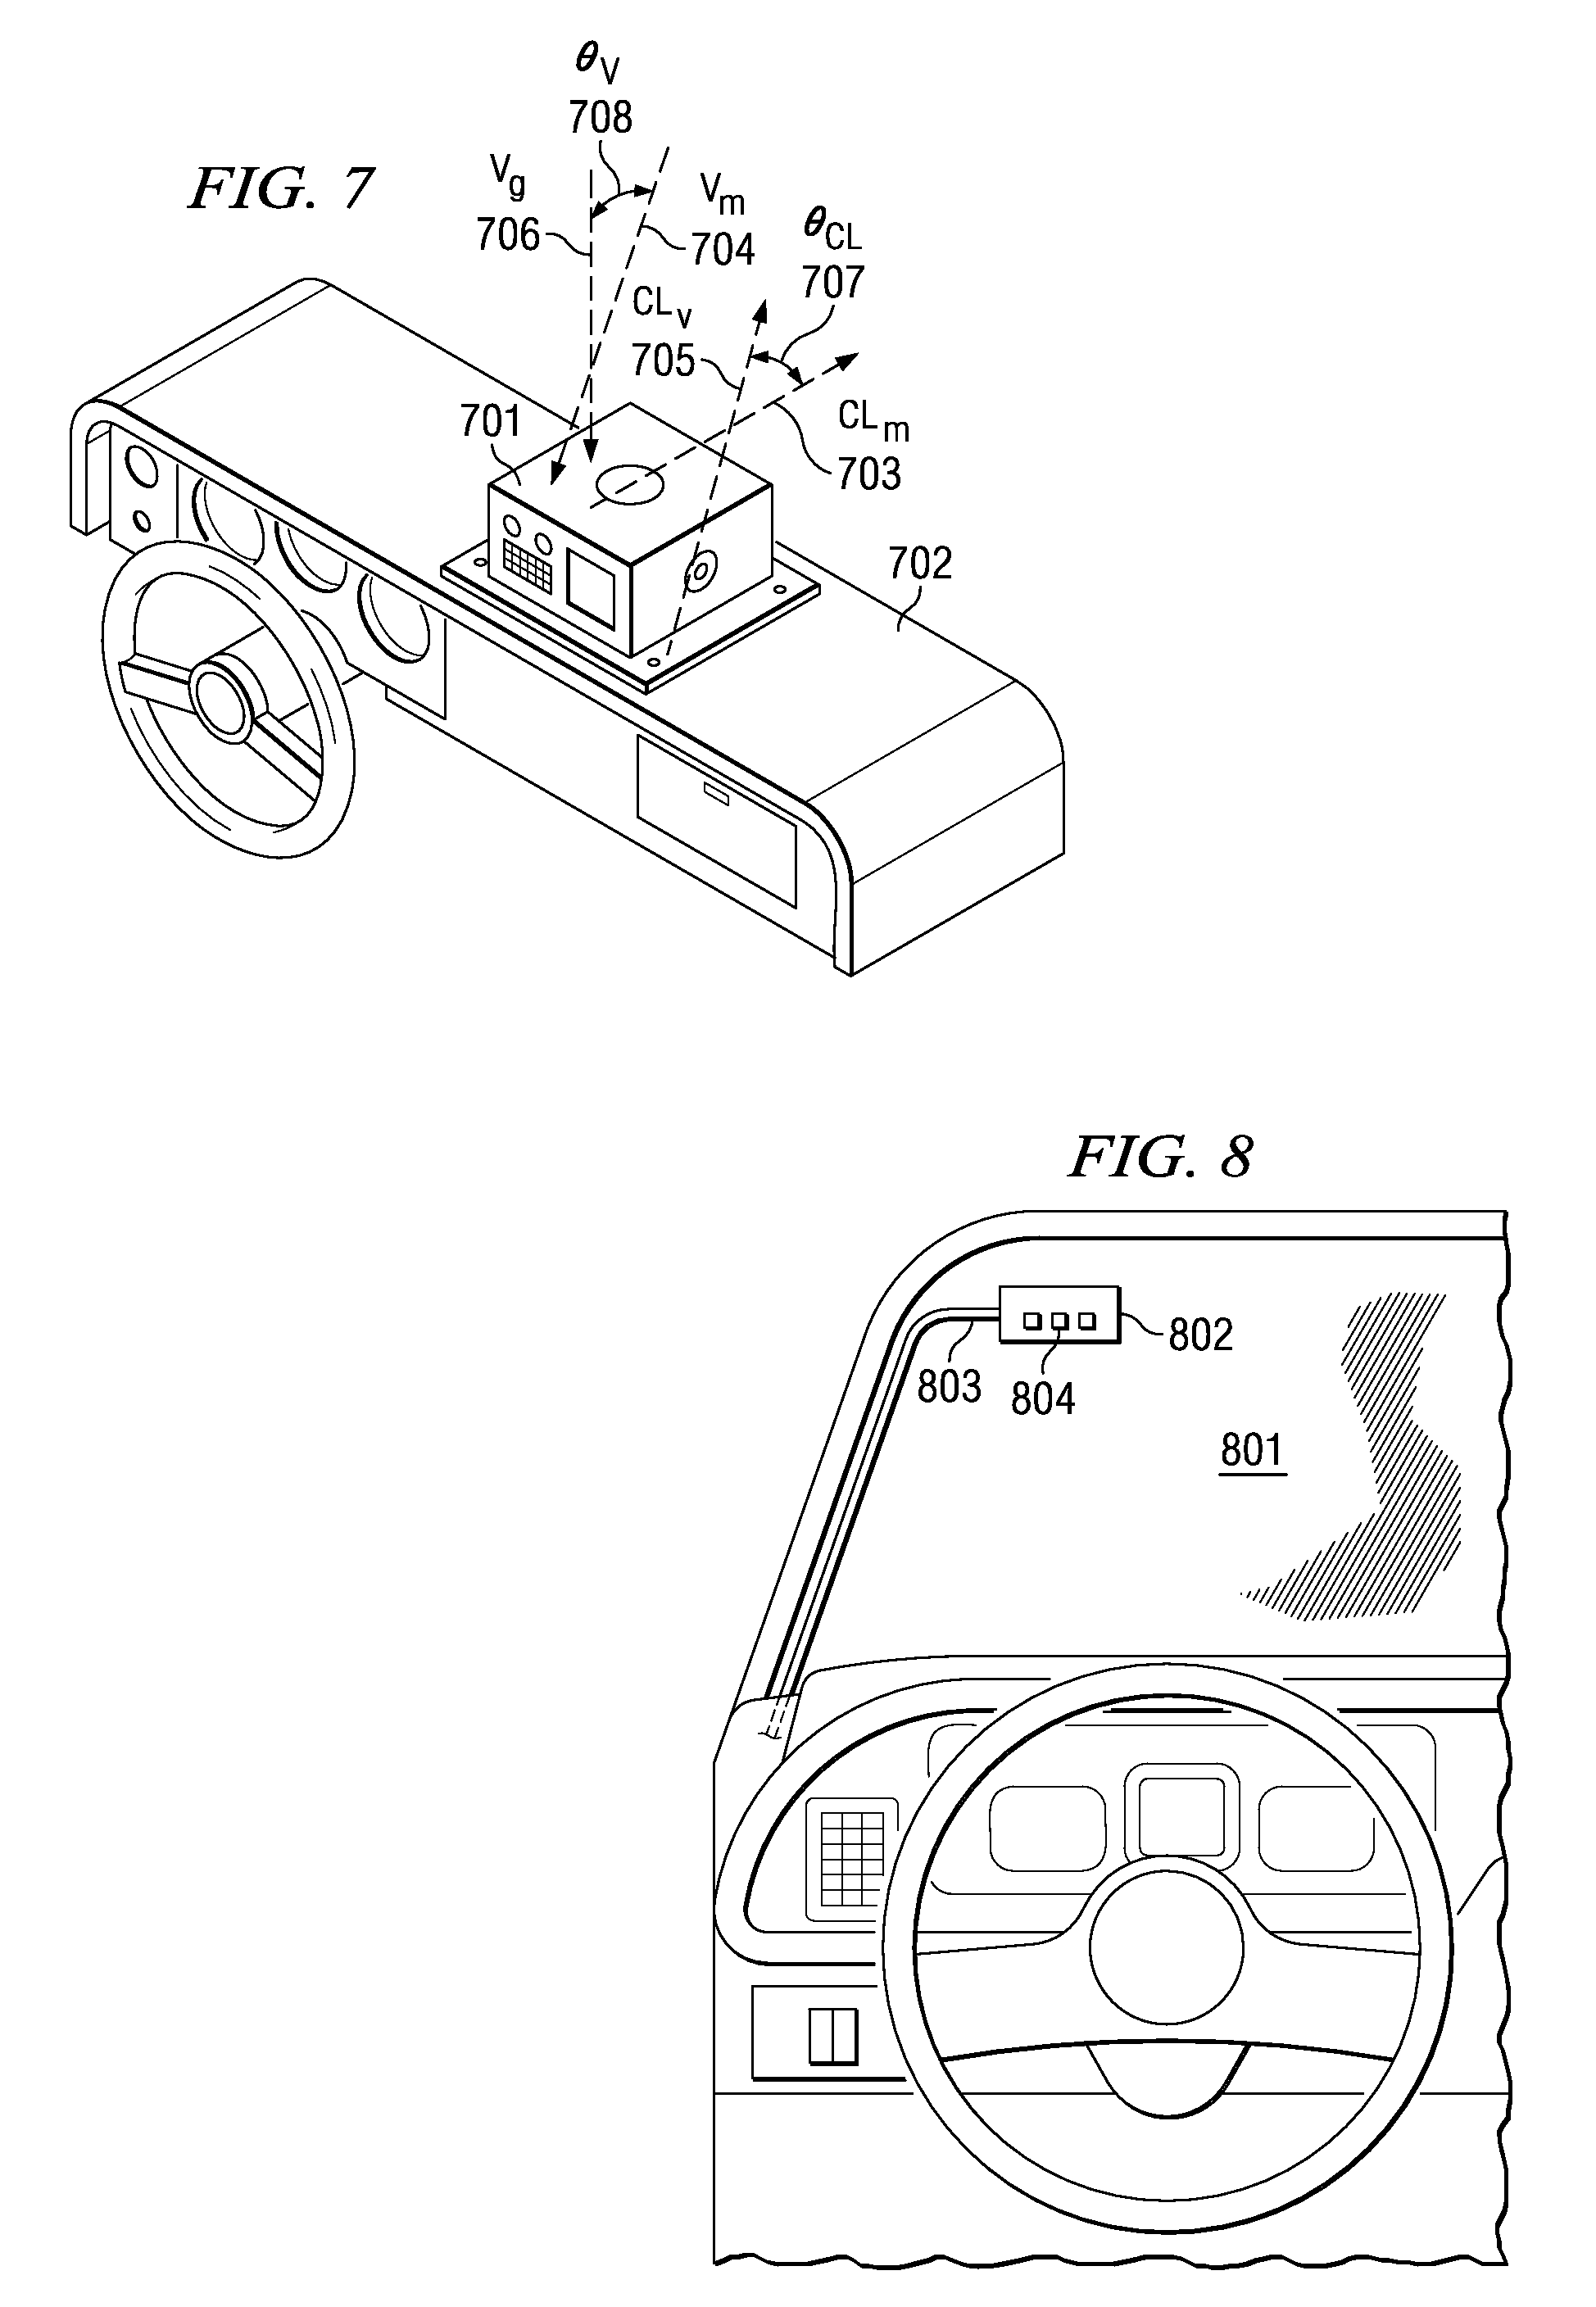 Patent US System And Method For Monitoring Vehicle - Car signs on dashboardrobert jacek google